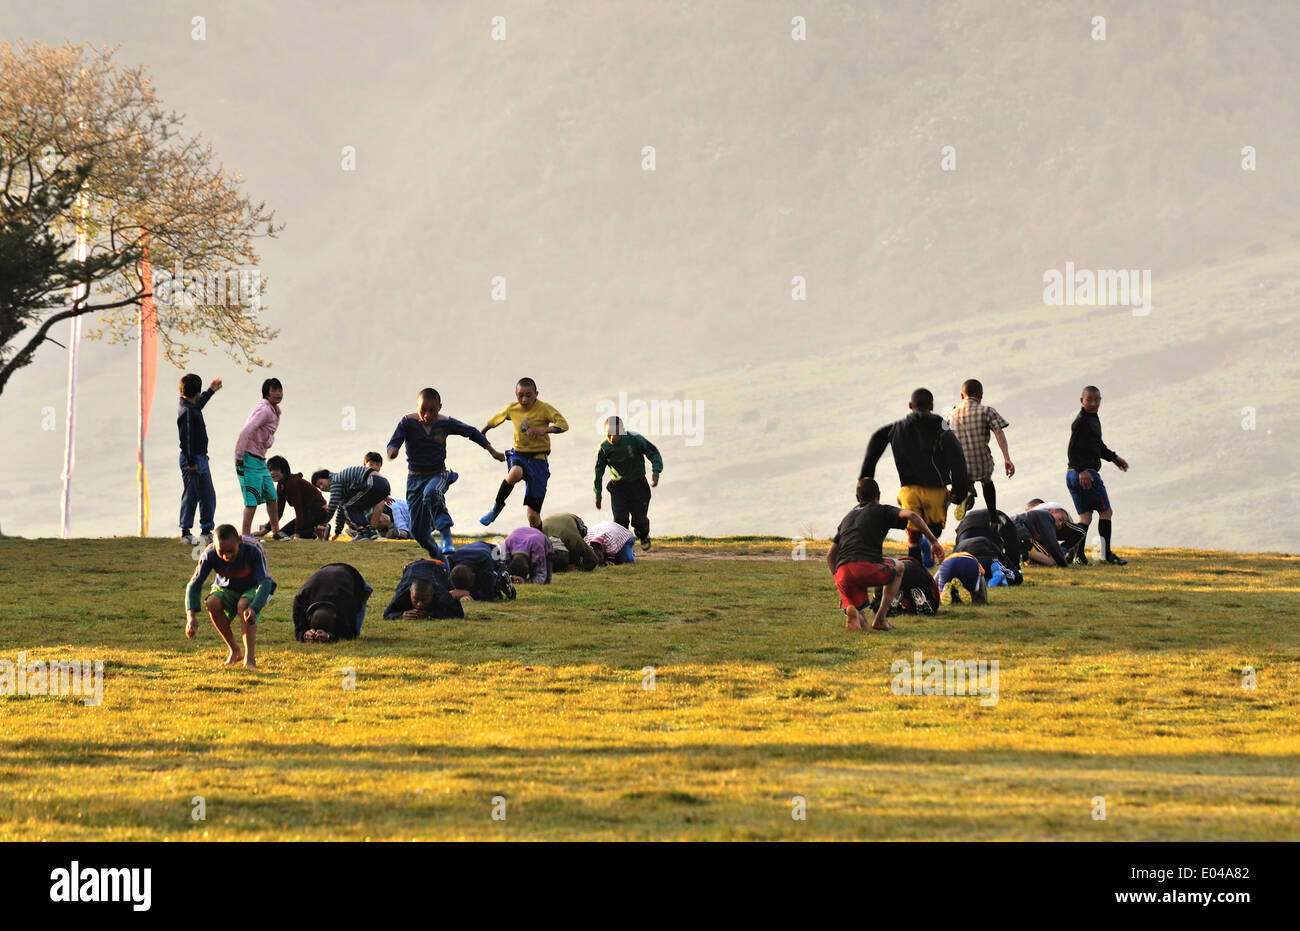 Kids exercising in the school playground, village of Sakteng, Eastern Bhutan - Stock Image